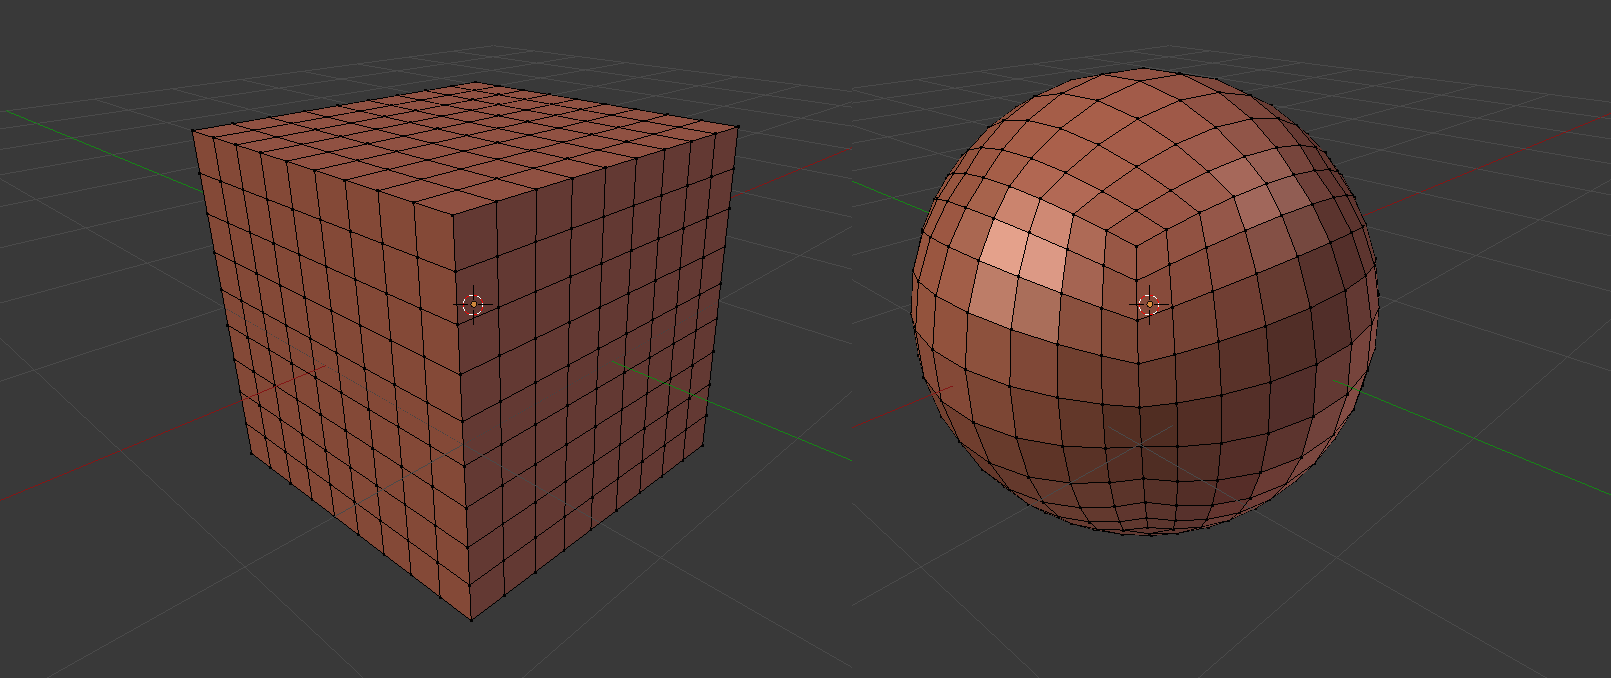 Using Blend Shapes to morph an object into another one